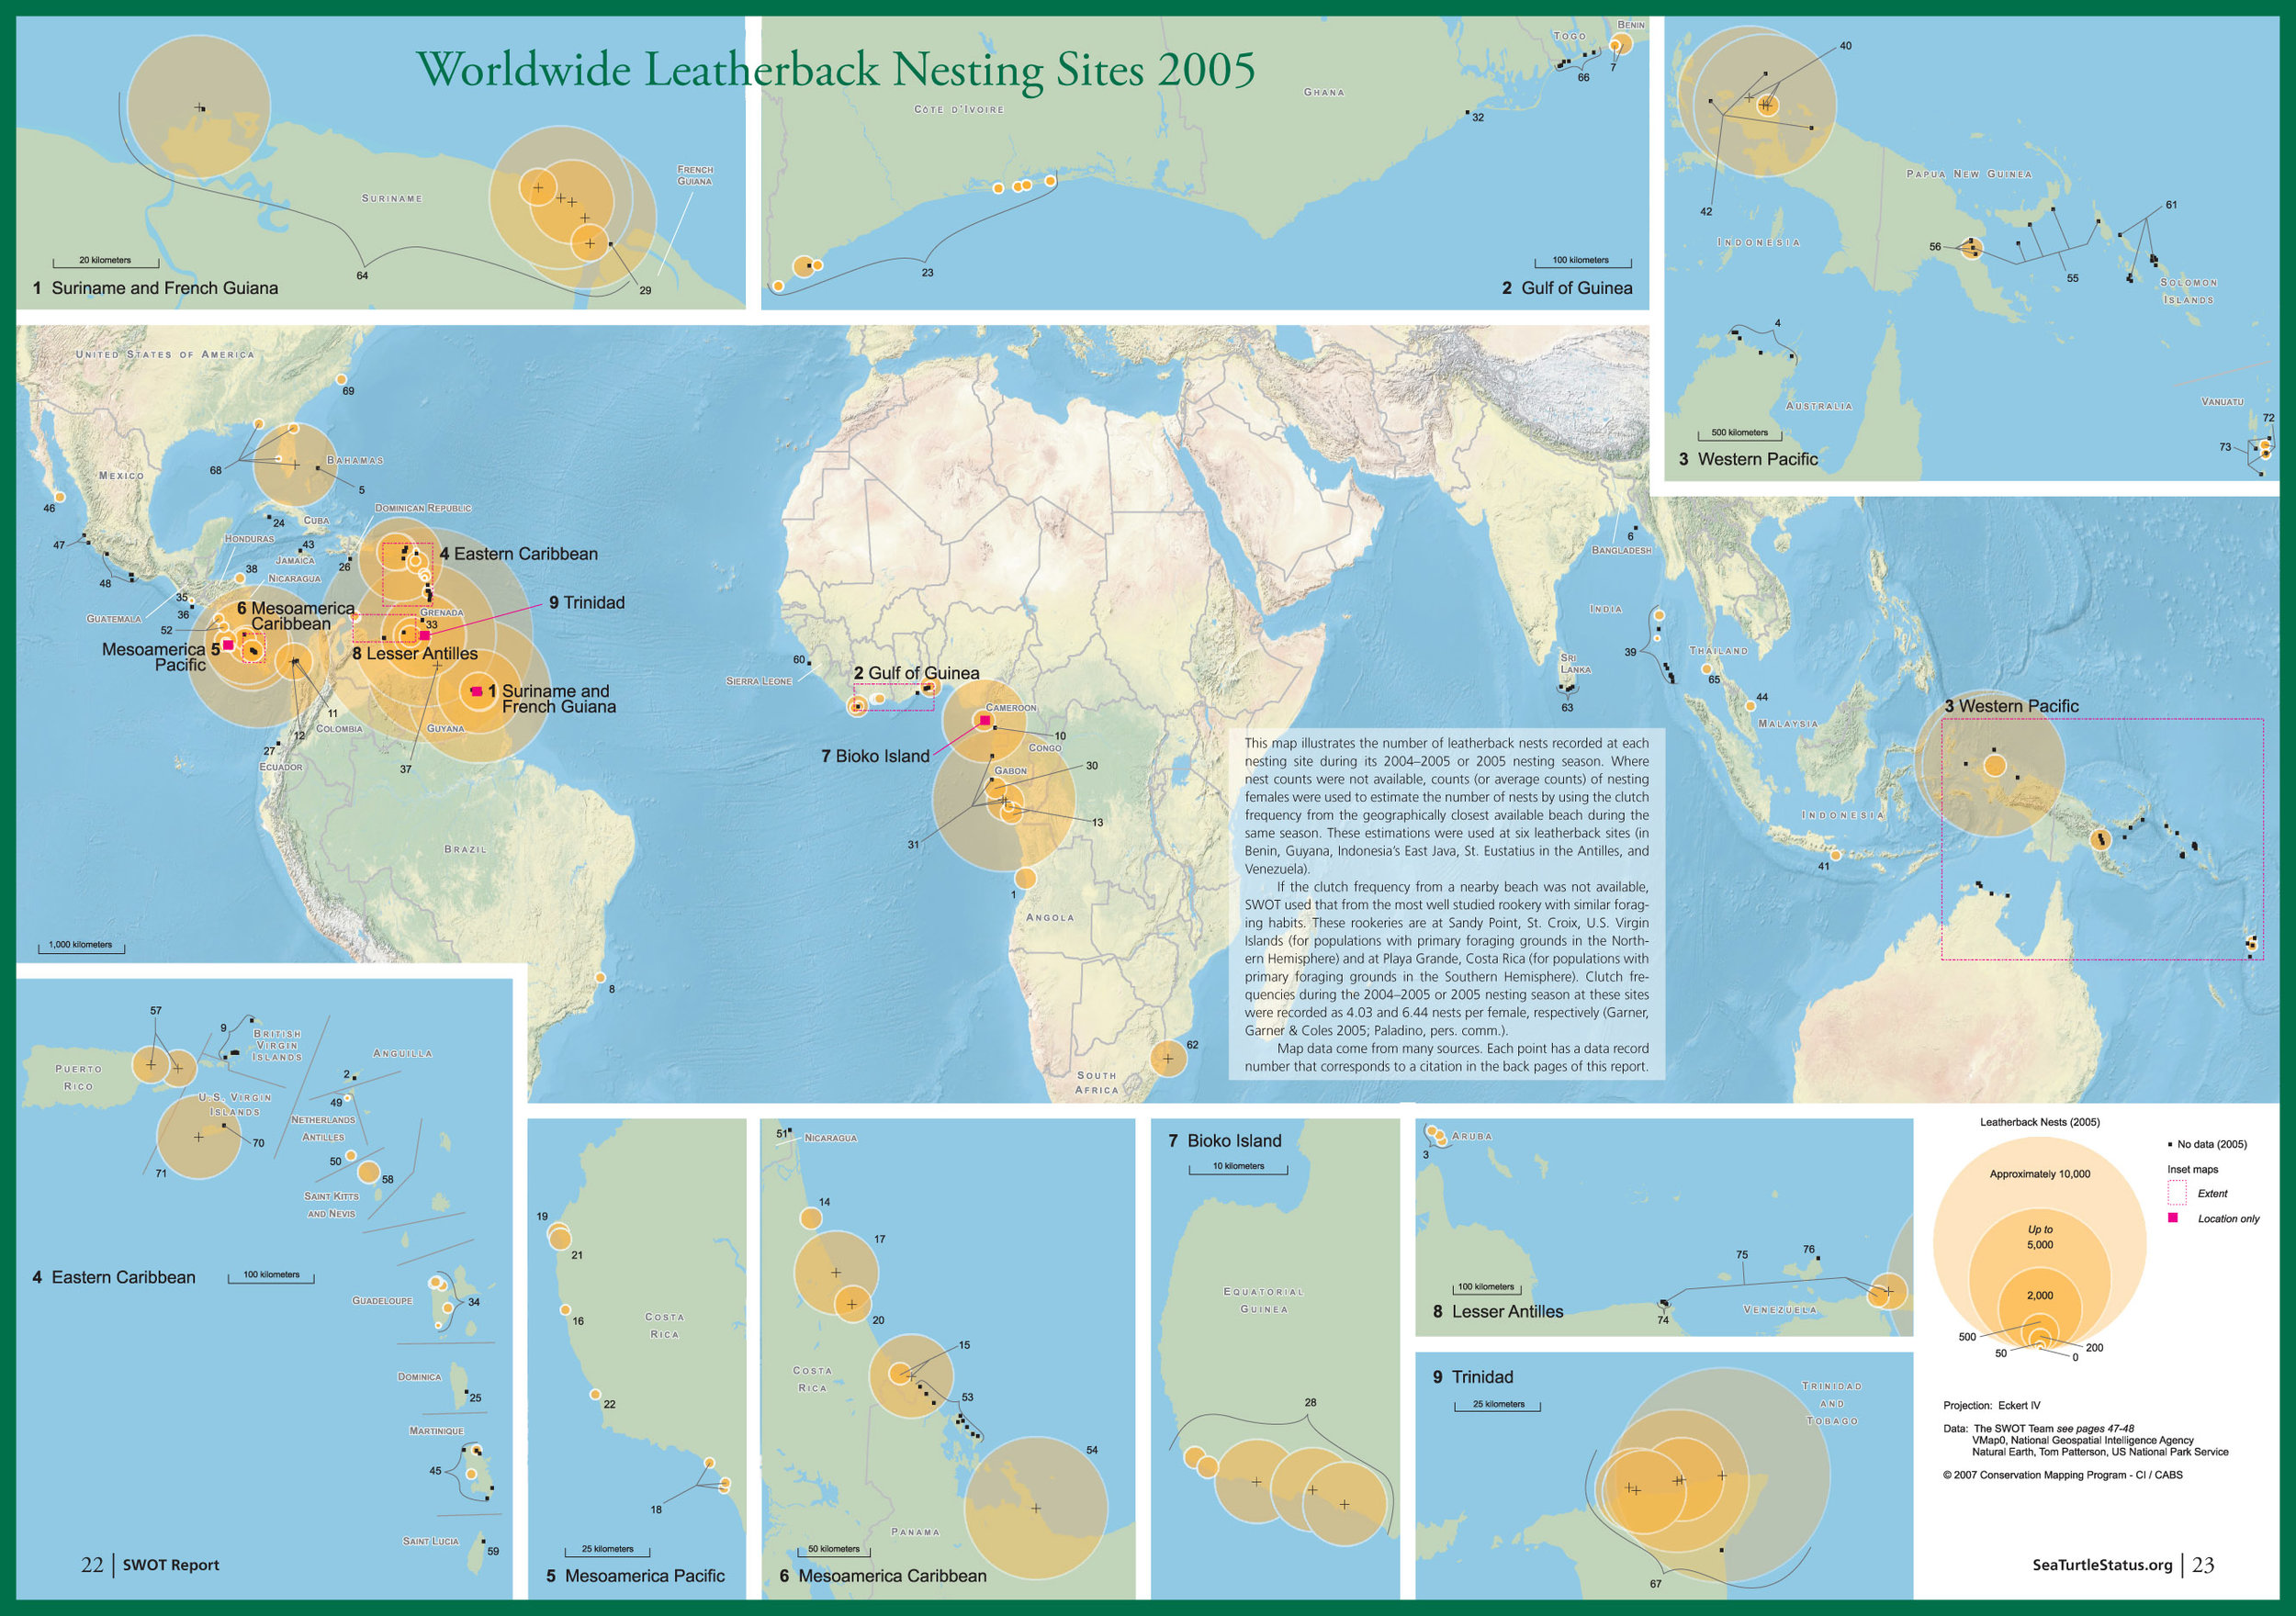 Worldwide Leatherback Nesting Sites 2005 ( data citations ) |   SWOT Report , vol. II (2007) .